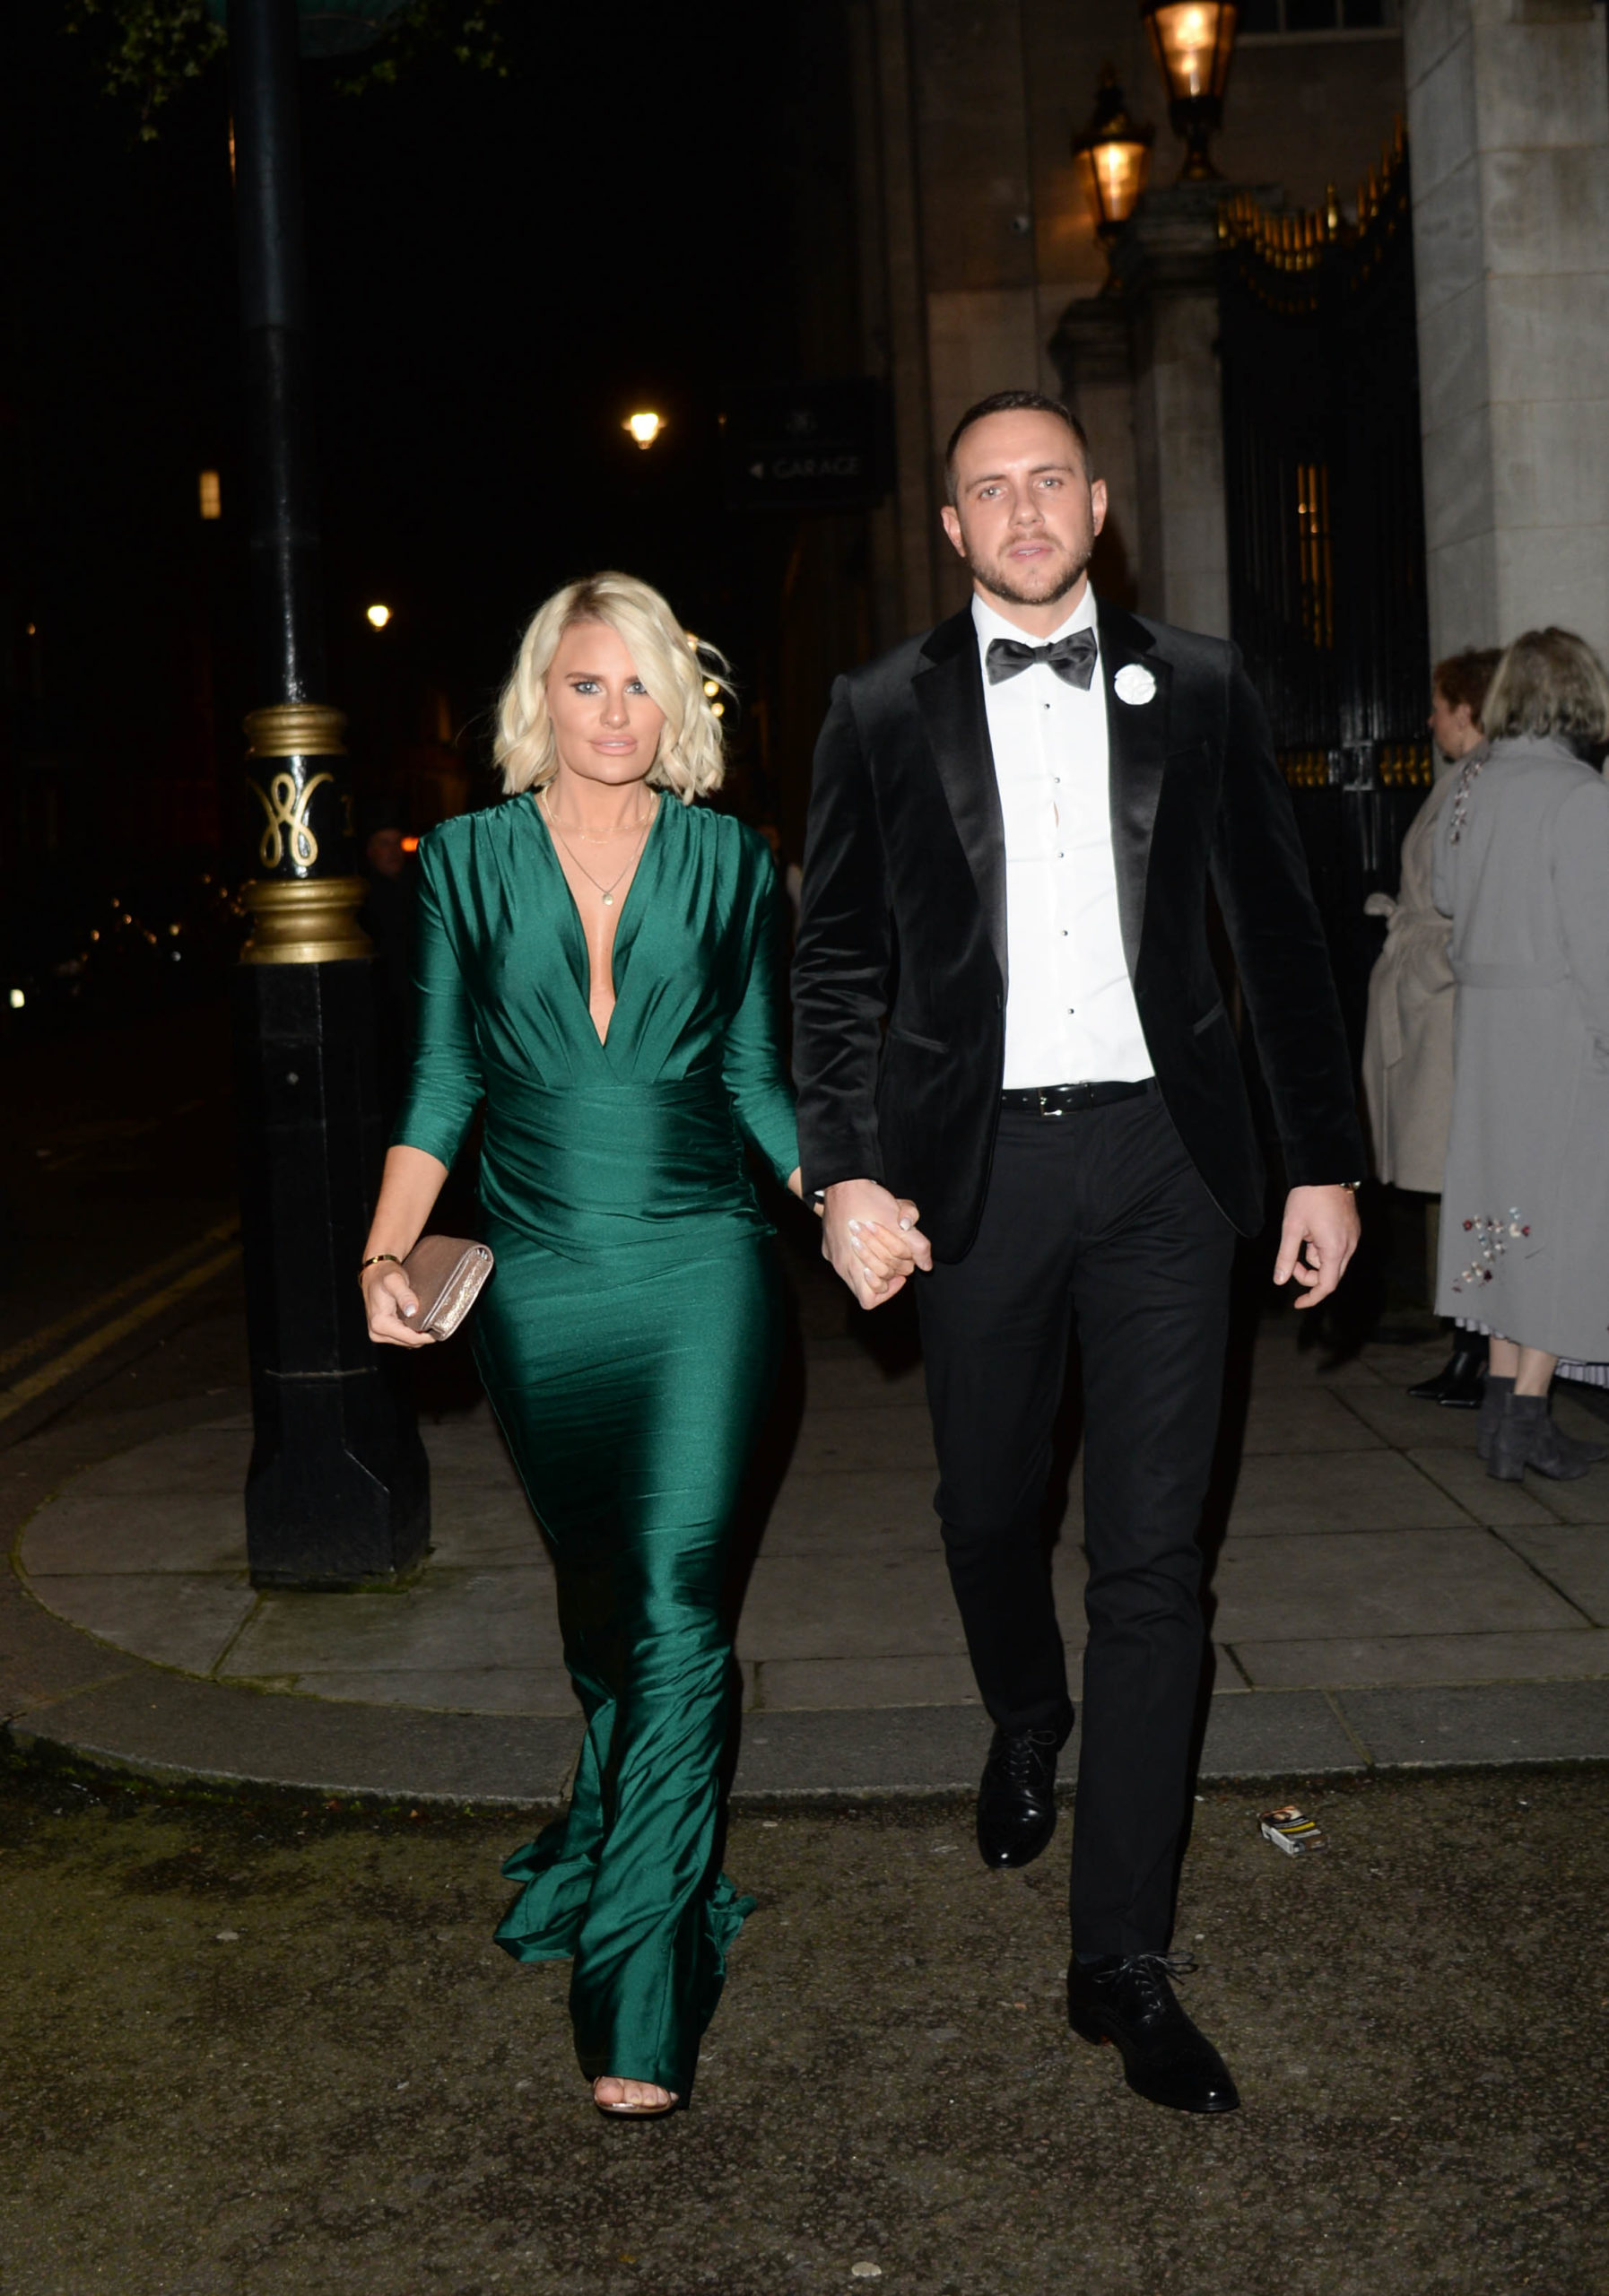 Danielle Armstrong and Tommy Edney